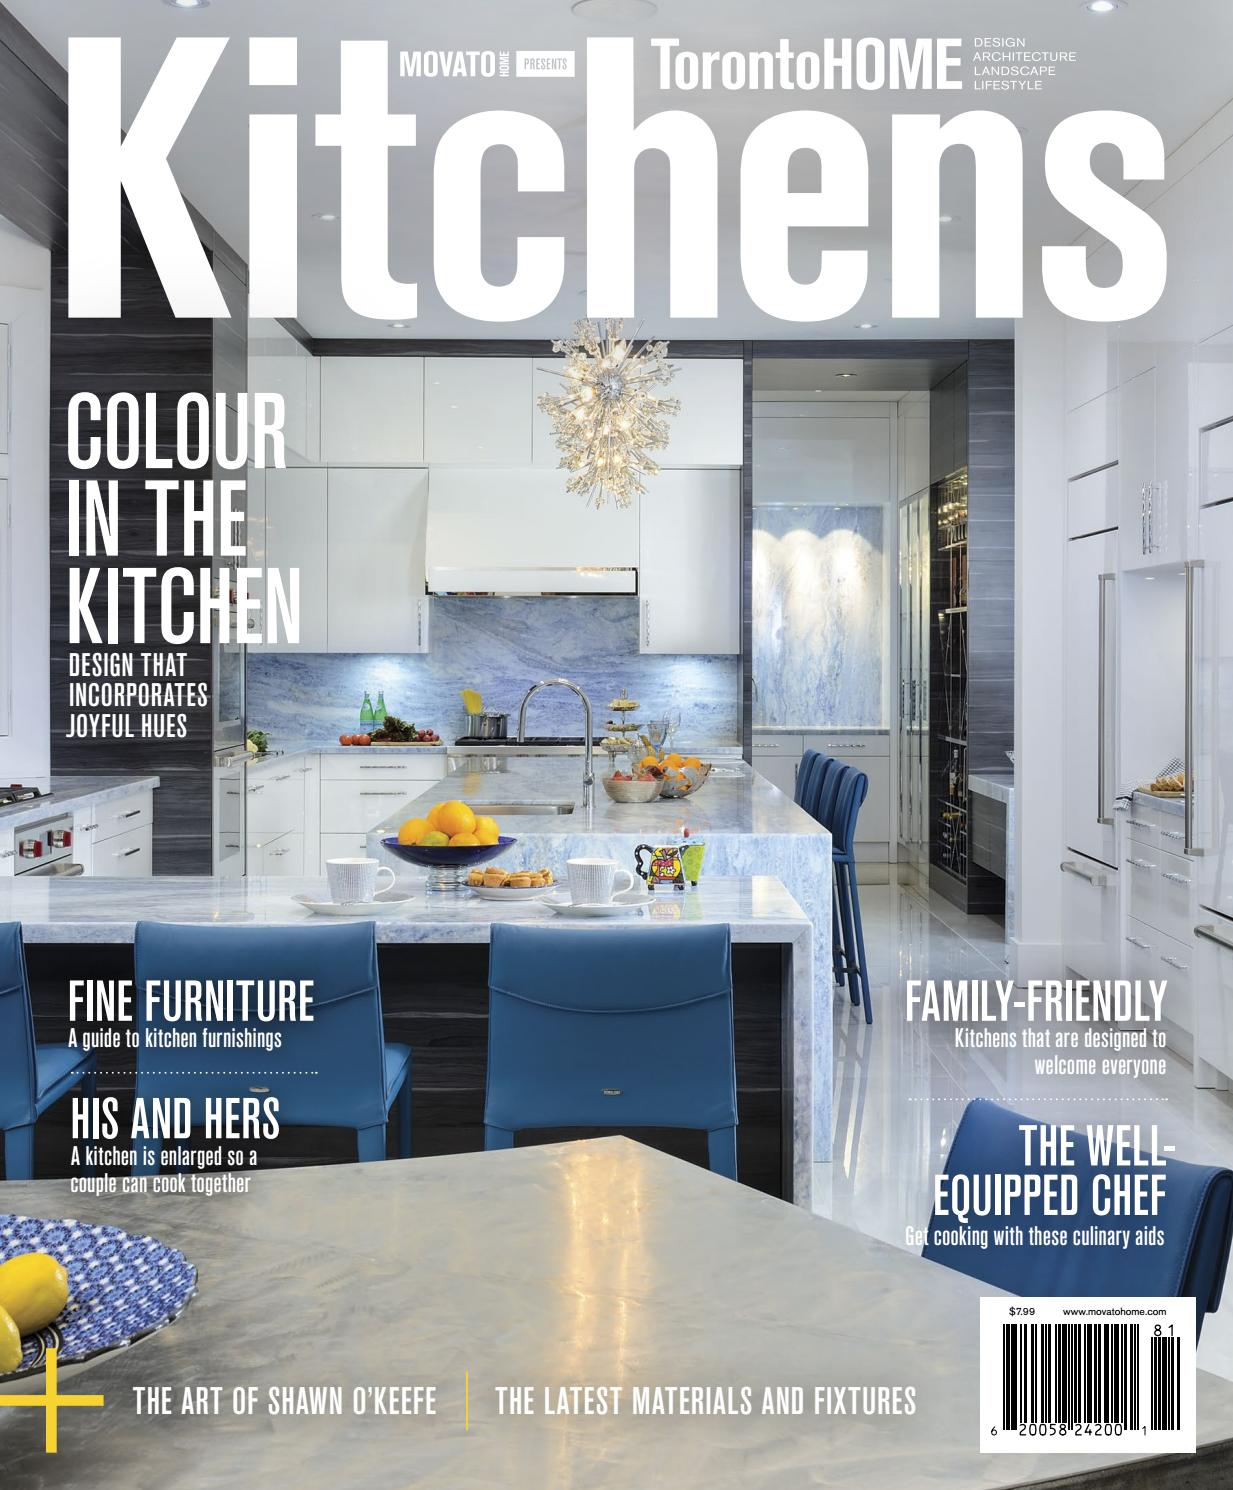 Toronto home kitchens 2018 by home in canada design ▫ architecture ▫ landscape ▫ lifestyle issuu